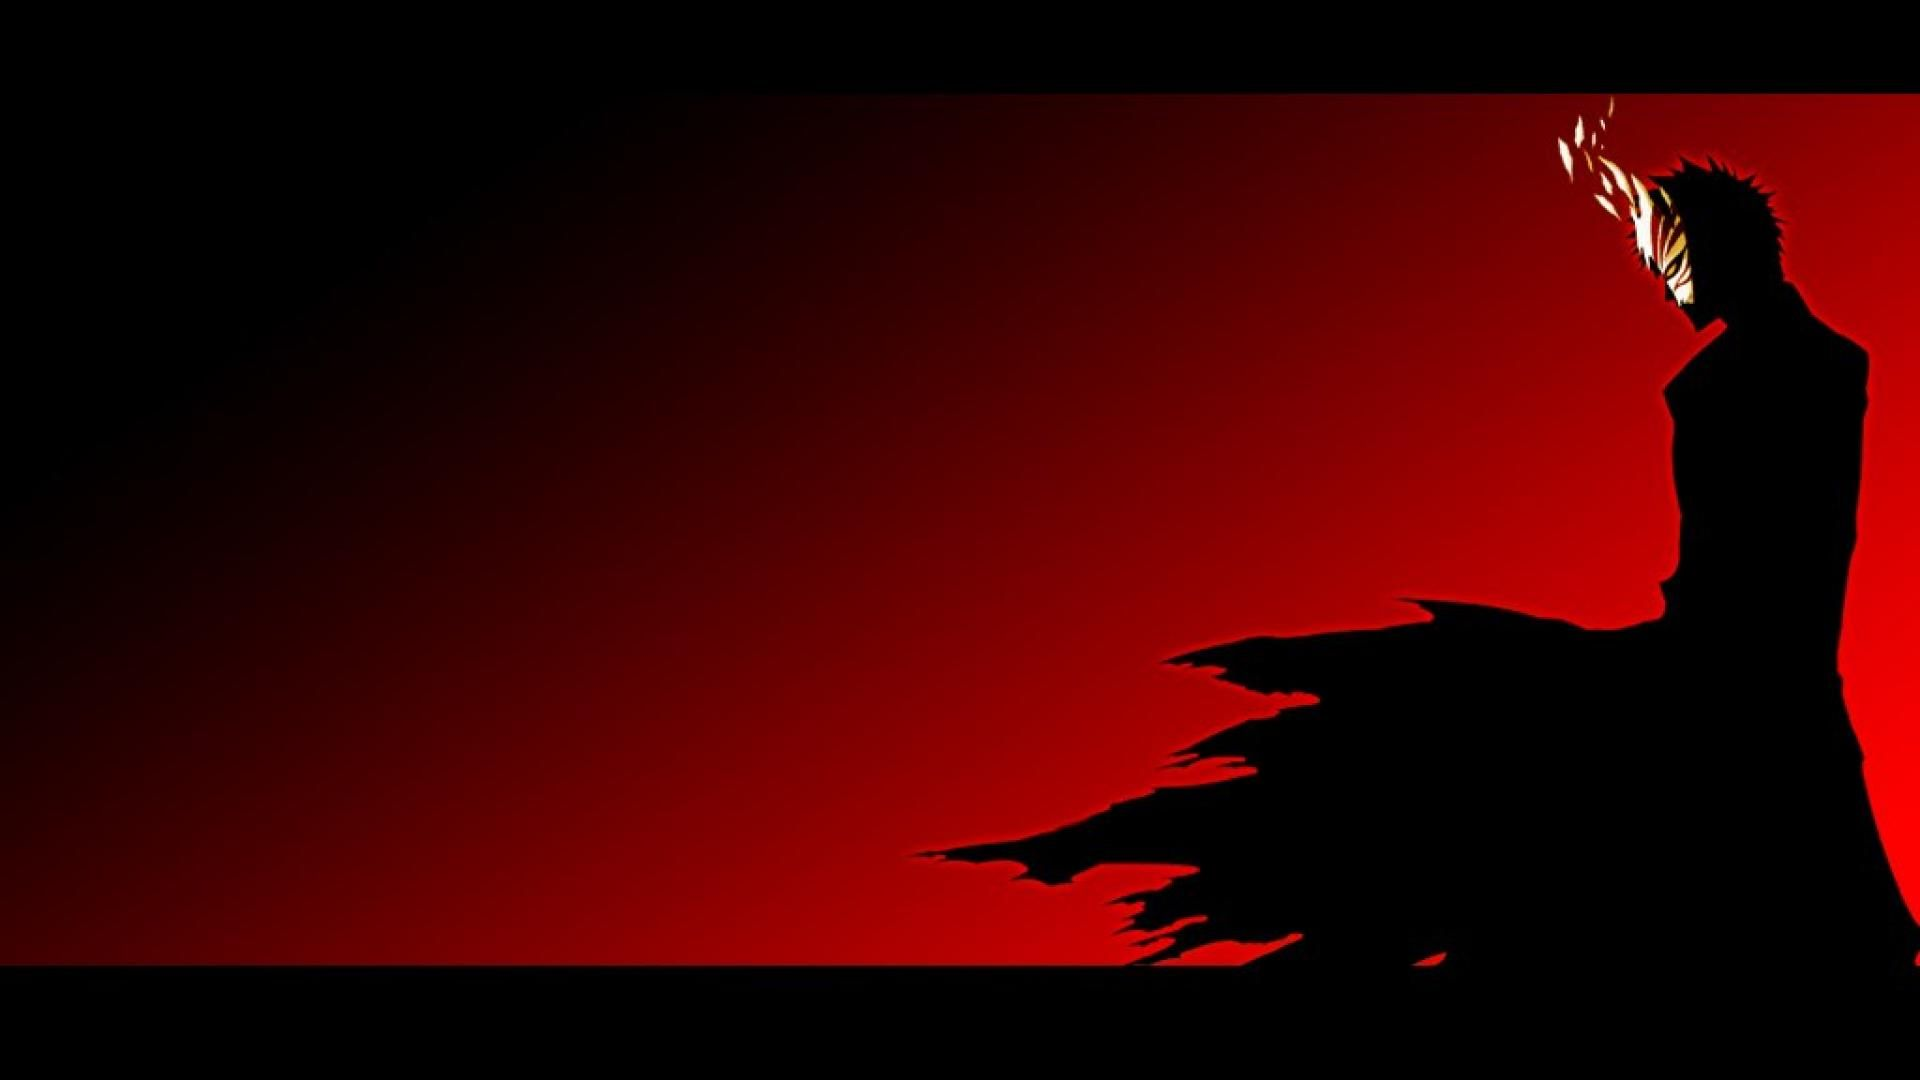 Dark Red Anime Wallpapers Top Free Dark Red Anime